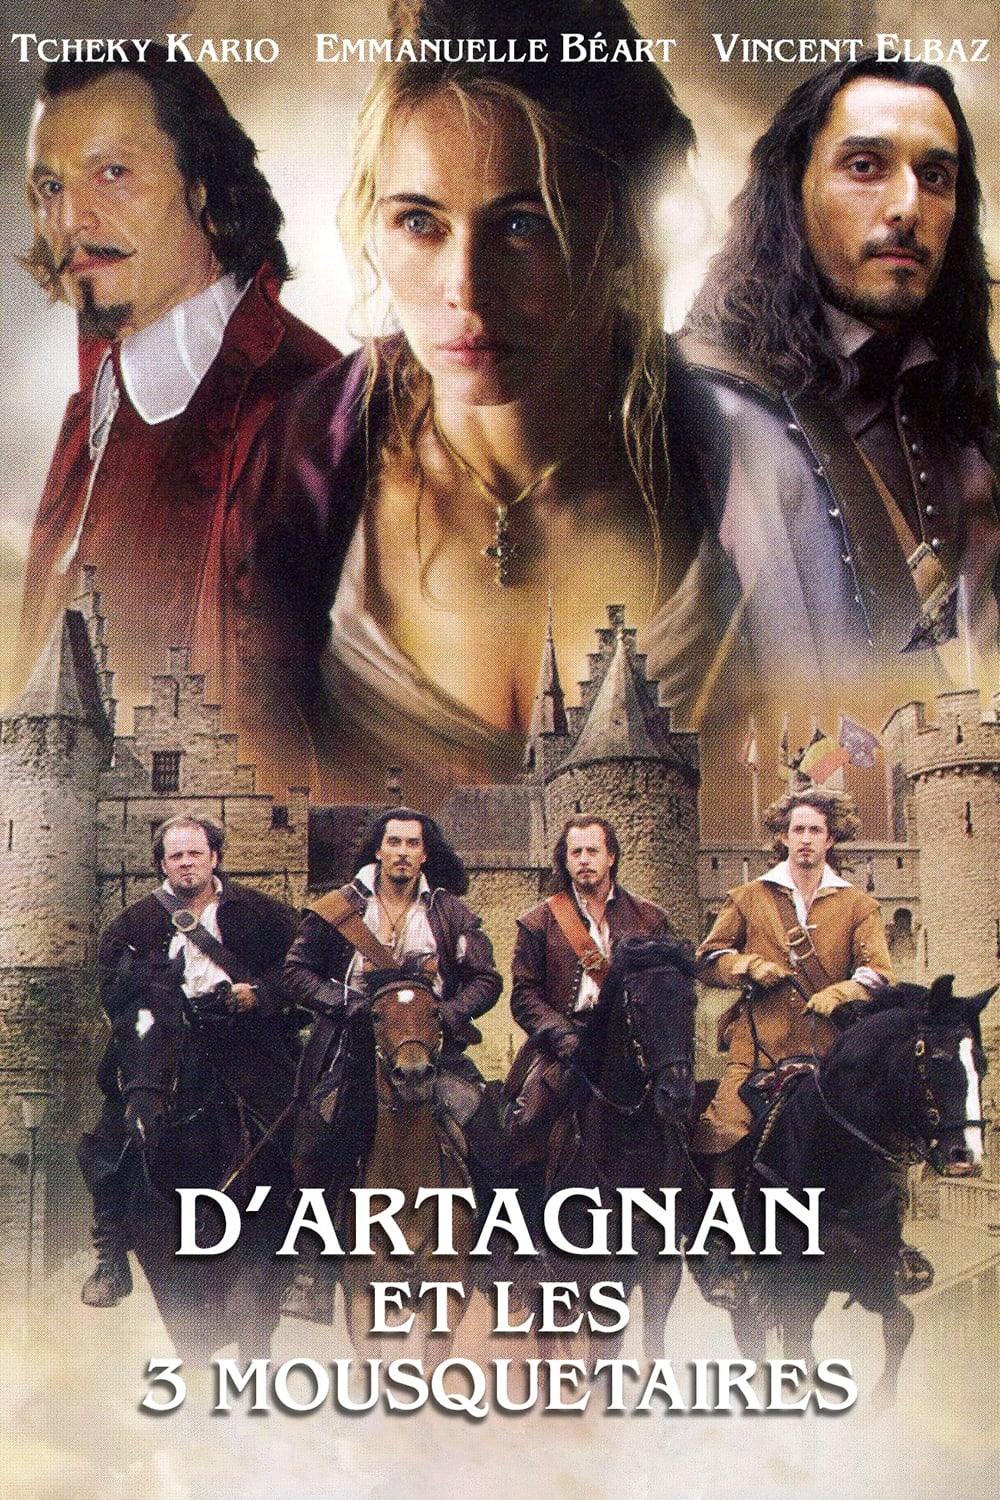 D'Artagnan and the Three Musketeers (2005)